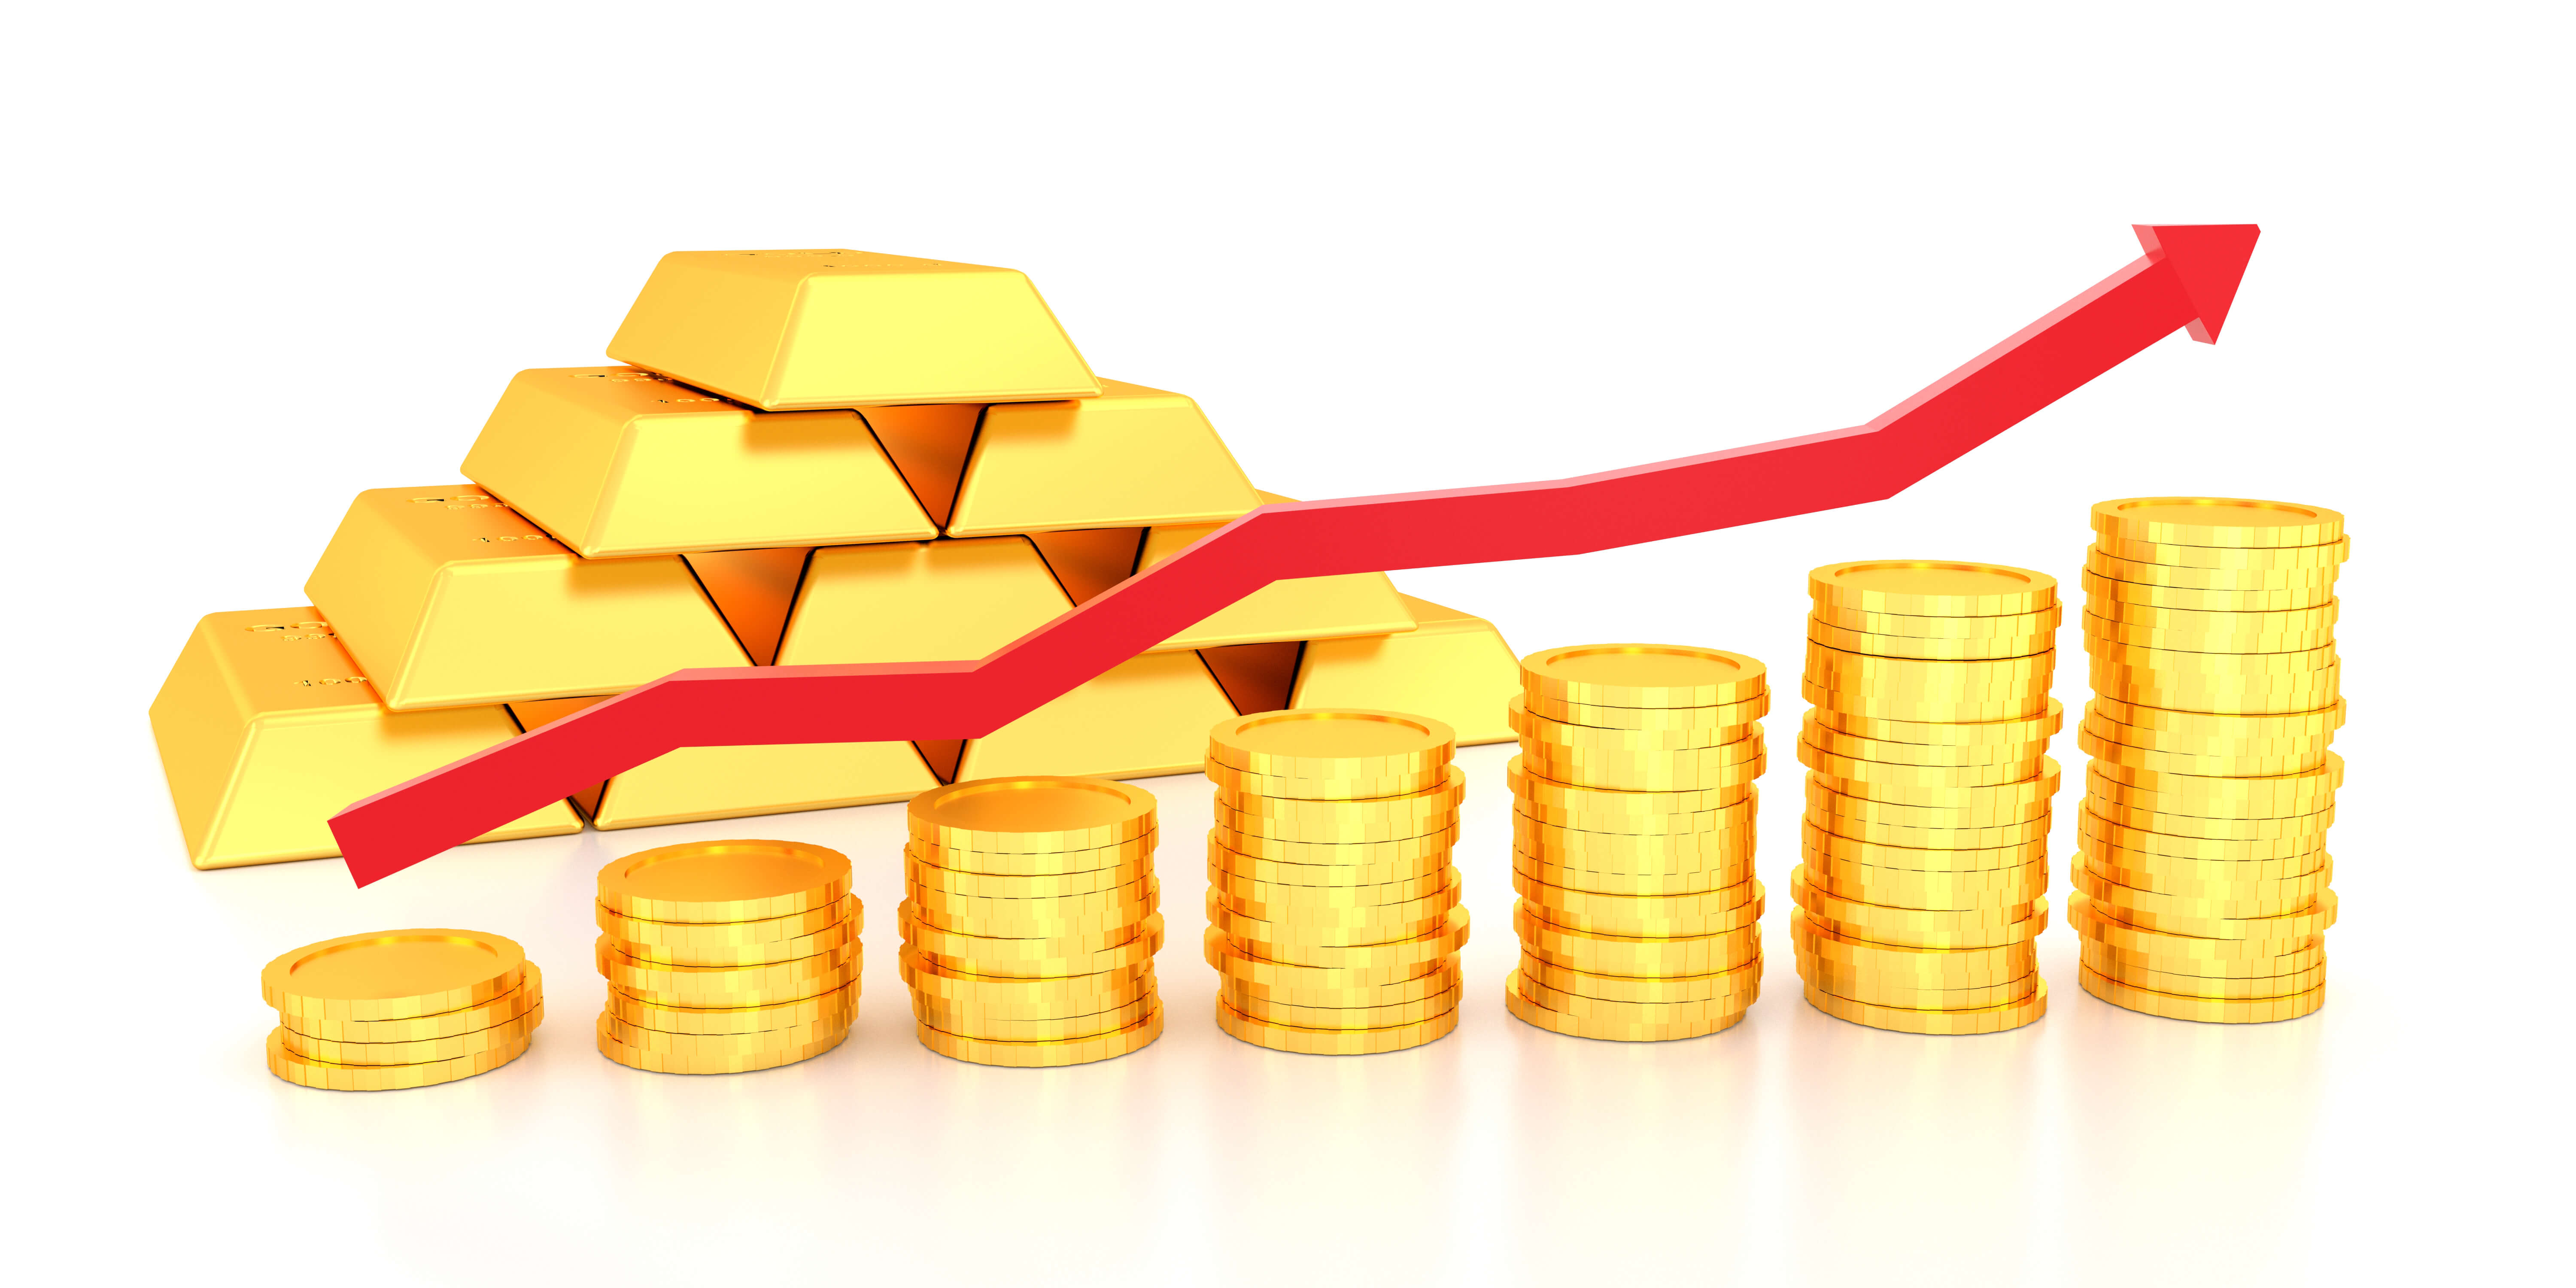 Spot price of gold is at the epicenter of the economy